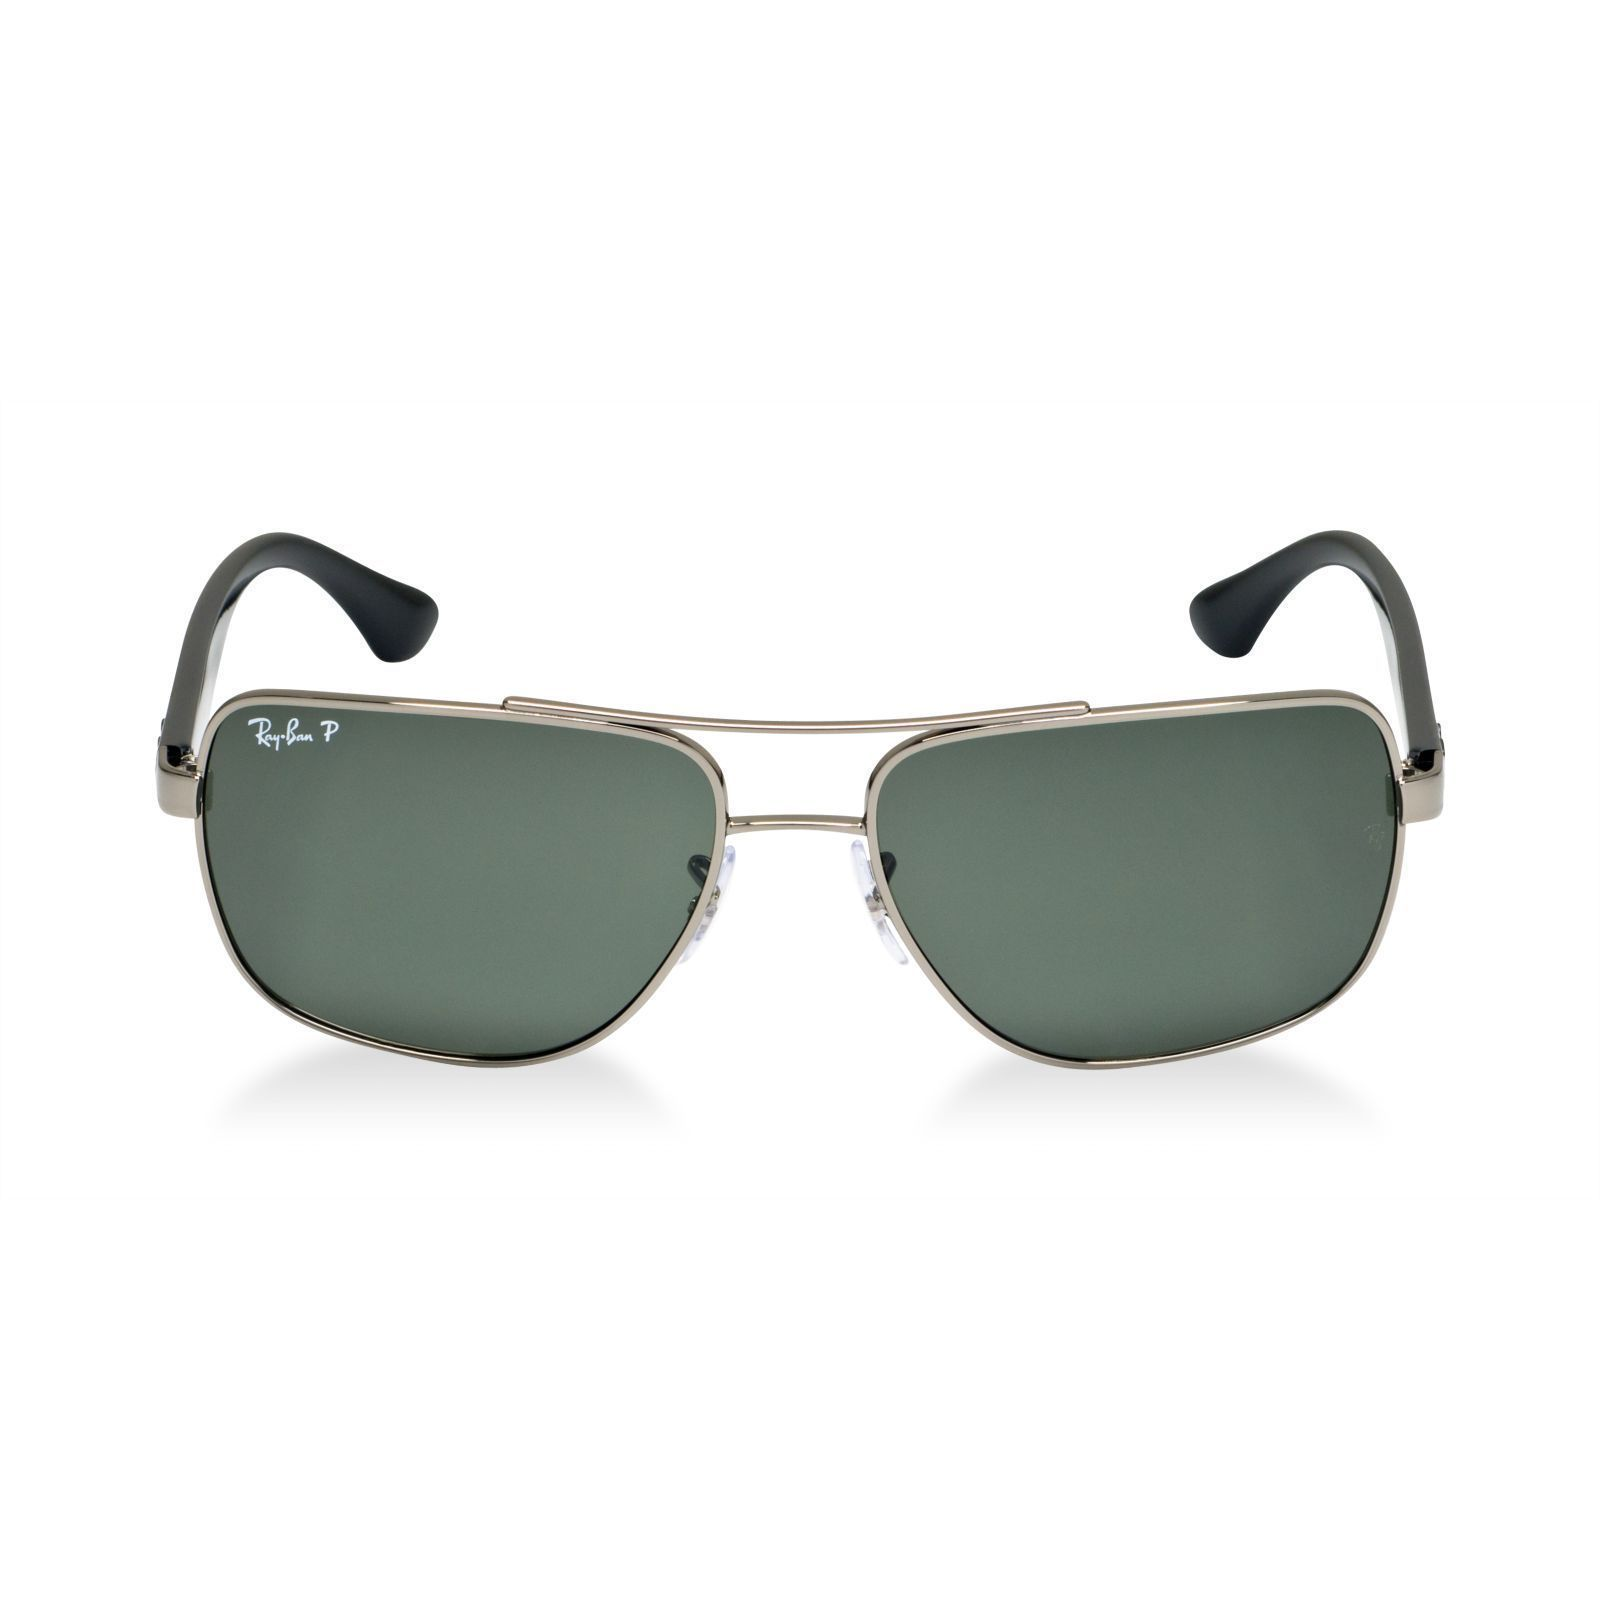 509d100698 ... ebay shop ray ban rb3483 004 58 mens gunmetal black frame polarized green  lens sunglasses free